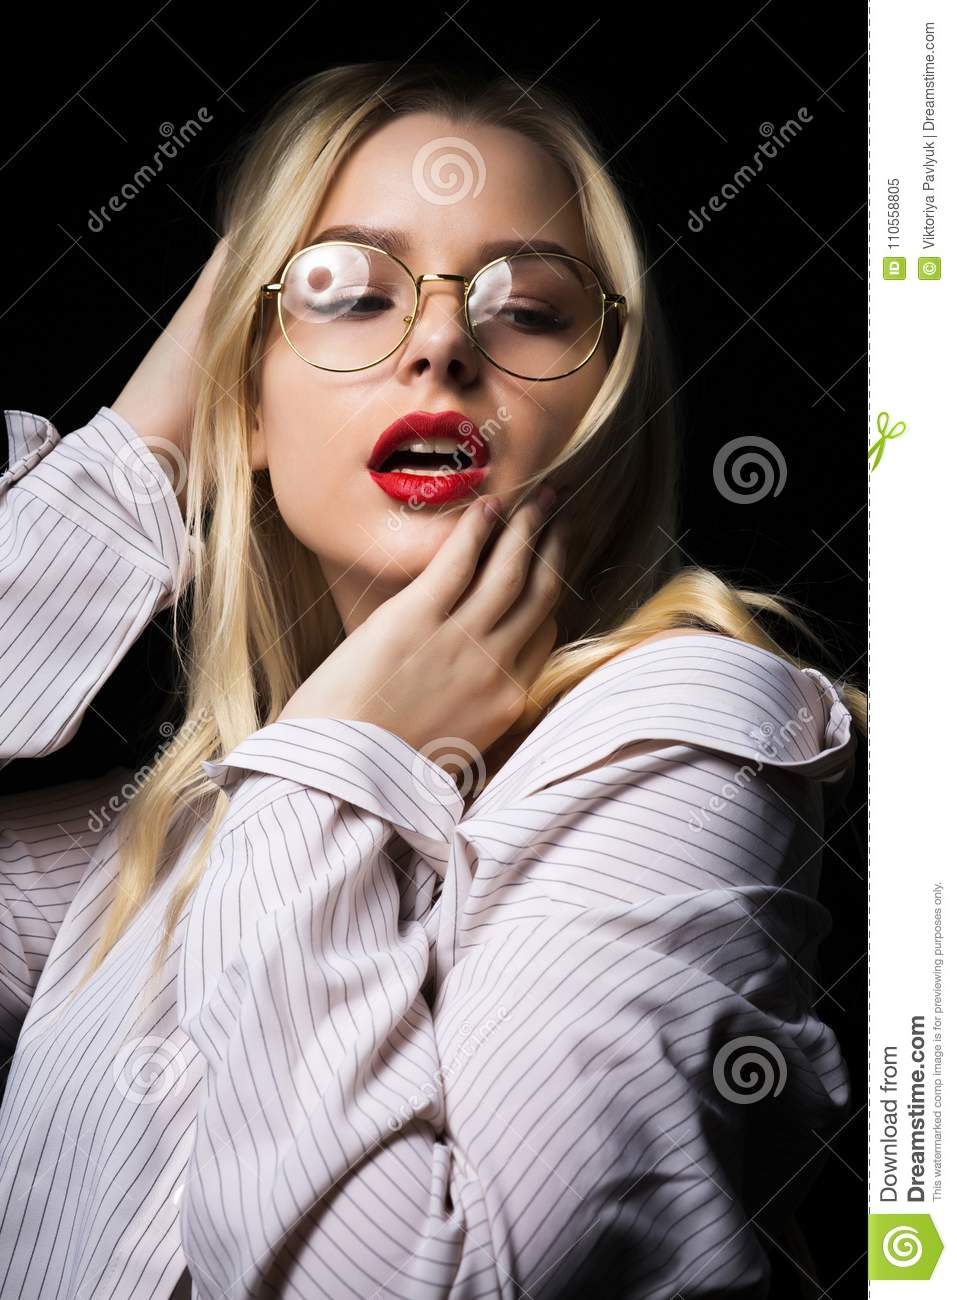 Naked blonde girl wearing glasses